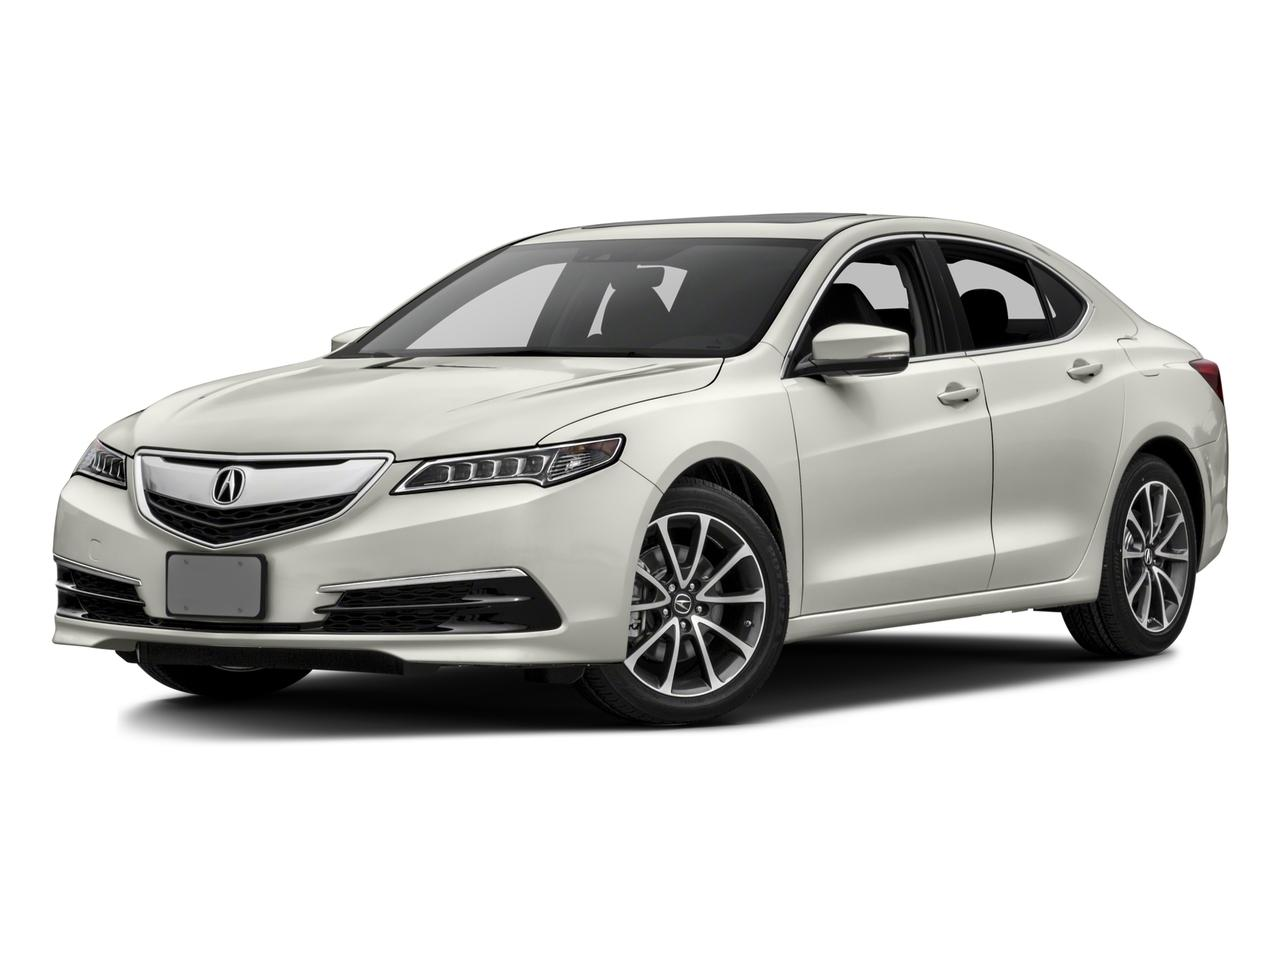 2016 Acura TLX Vehicle Photo in Plainfield, IL 60586